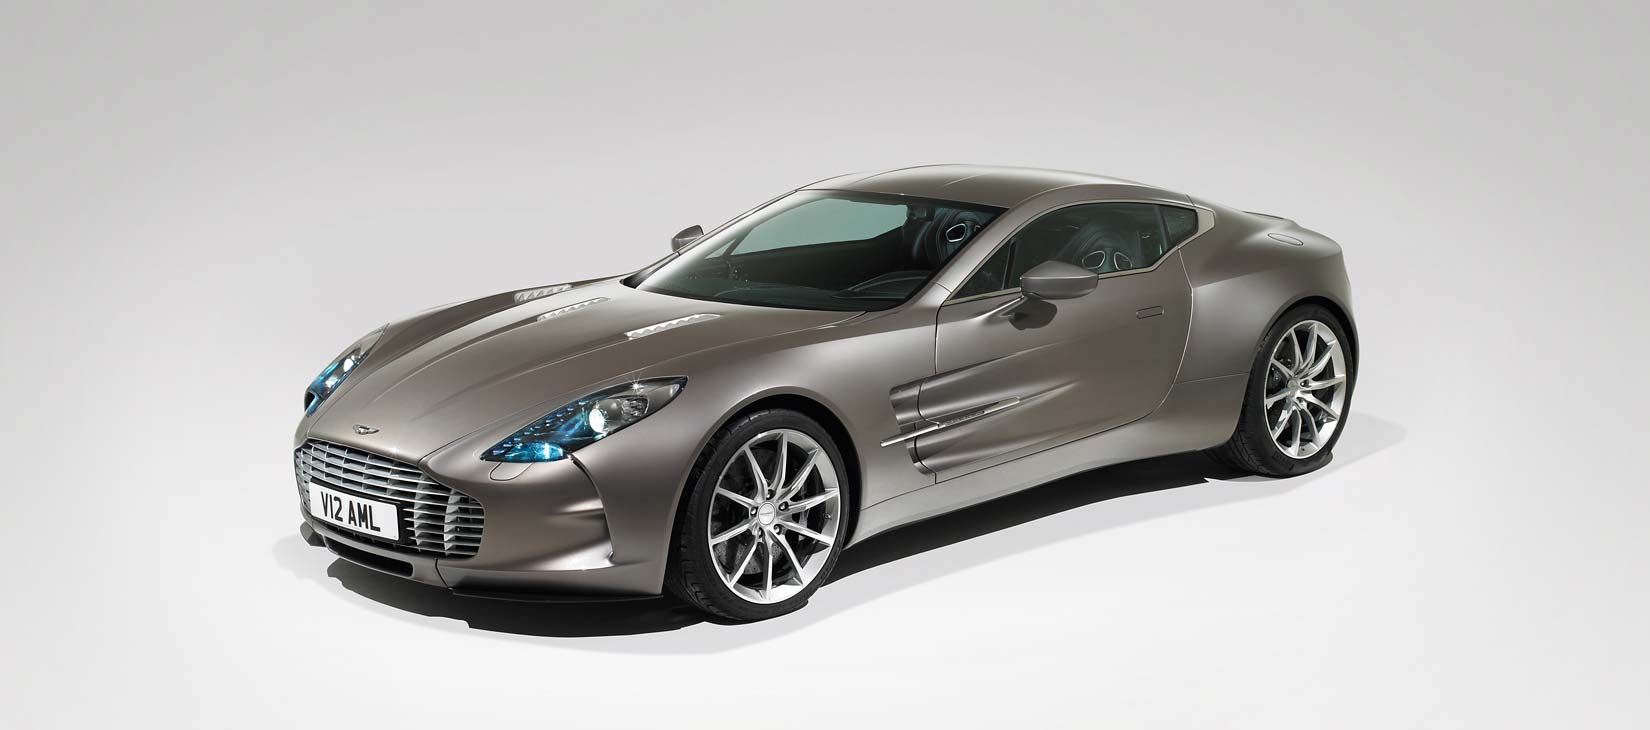 10 most powerful cars in the world - Aston Martin One-77